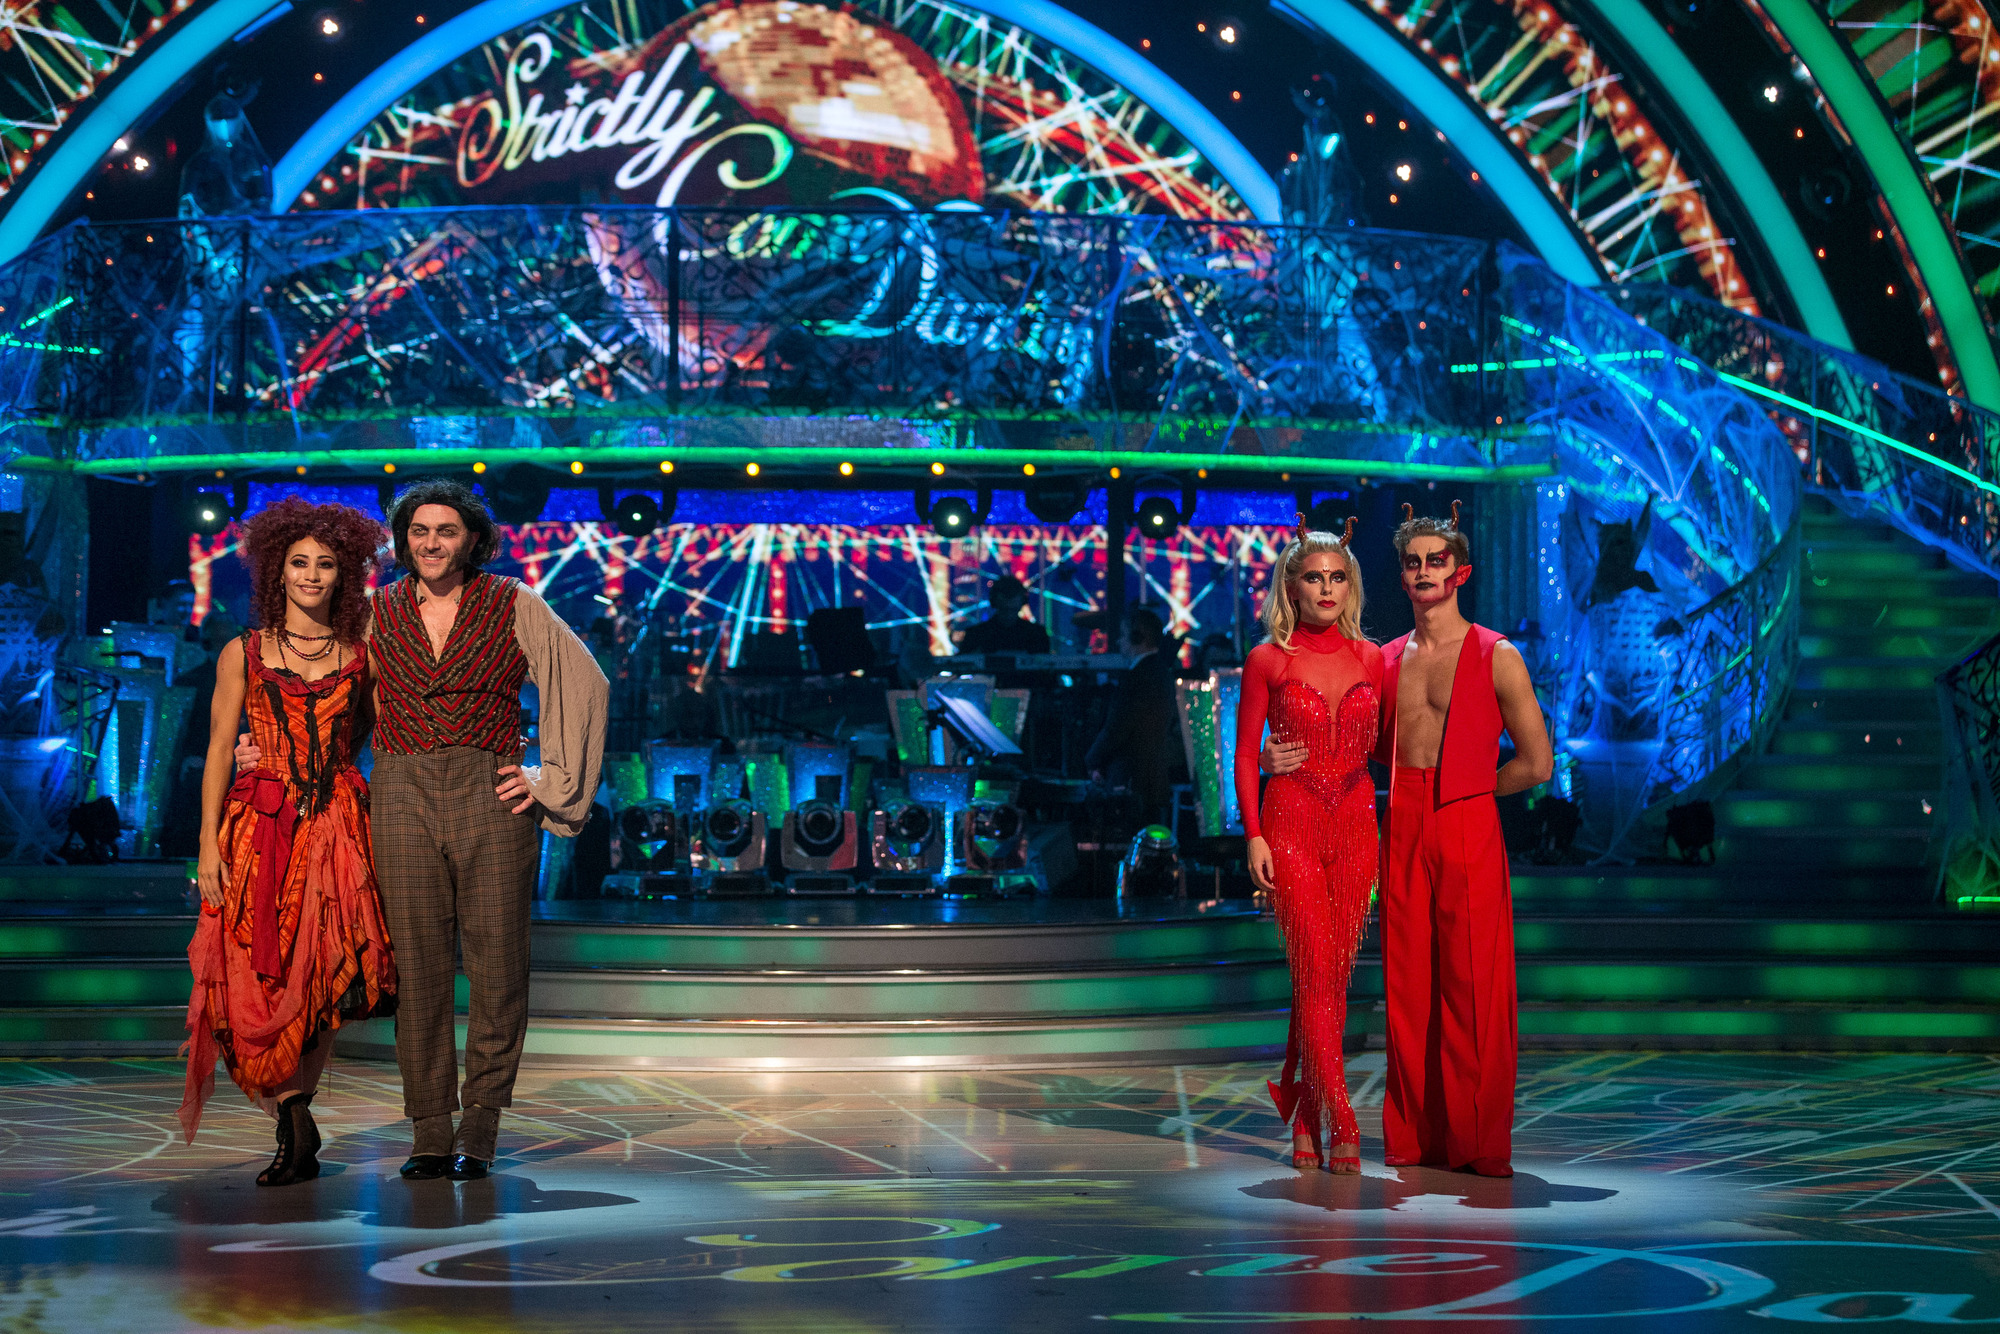 WARNING: Embargoed for publication until 20:00:01 on 29/10/2017 - Programme Name: Strictly Come Dancing 2017 - TX: 29/10/2017 - Episode: Strictly Come Dancing 2017 - TX 6 RESULTS SHOW (No. n/a) - Picture Shows: **RESULTS SHOW - STRICTLY EMBARGOED FOR PUBLICATION UNTIL 20:00 HRS ON SUNDAY 29TH OCTOBER 2017**  The bottom two couples Karen Clifton, Simon Rider, Mollie King, AJ Pritchard - (C) BBC - Photographer: Guy Levy